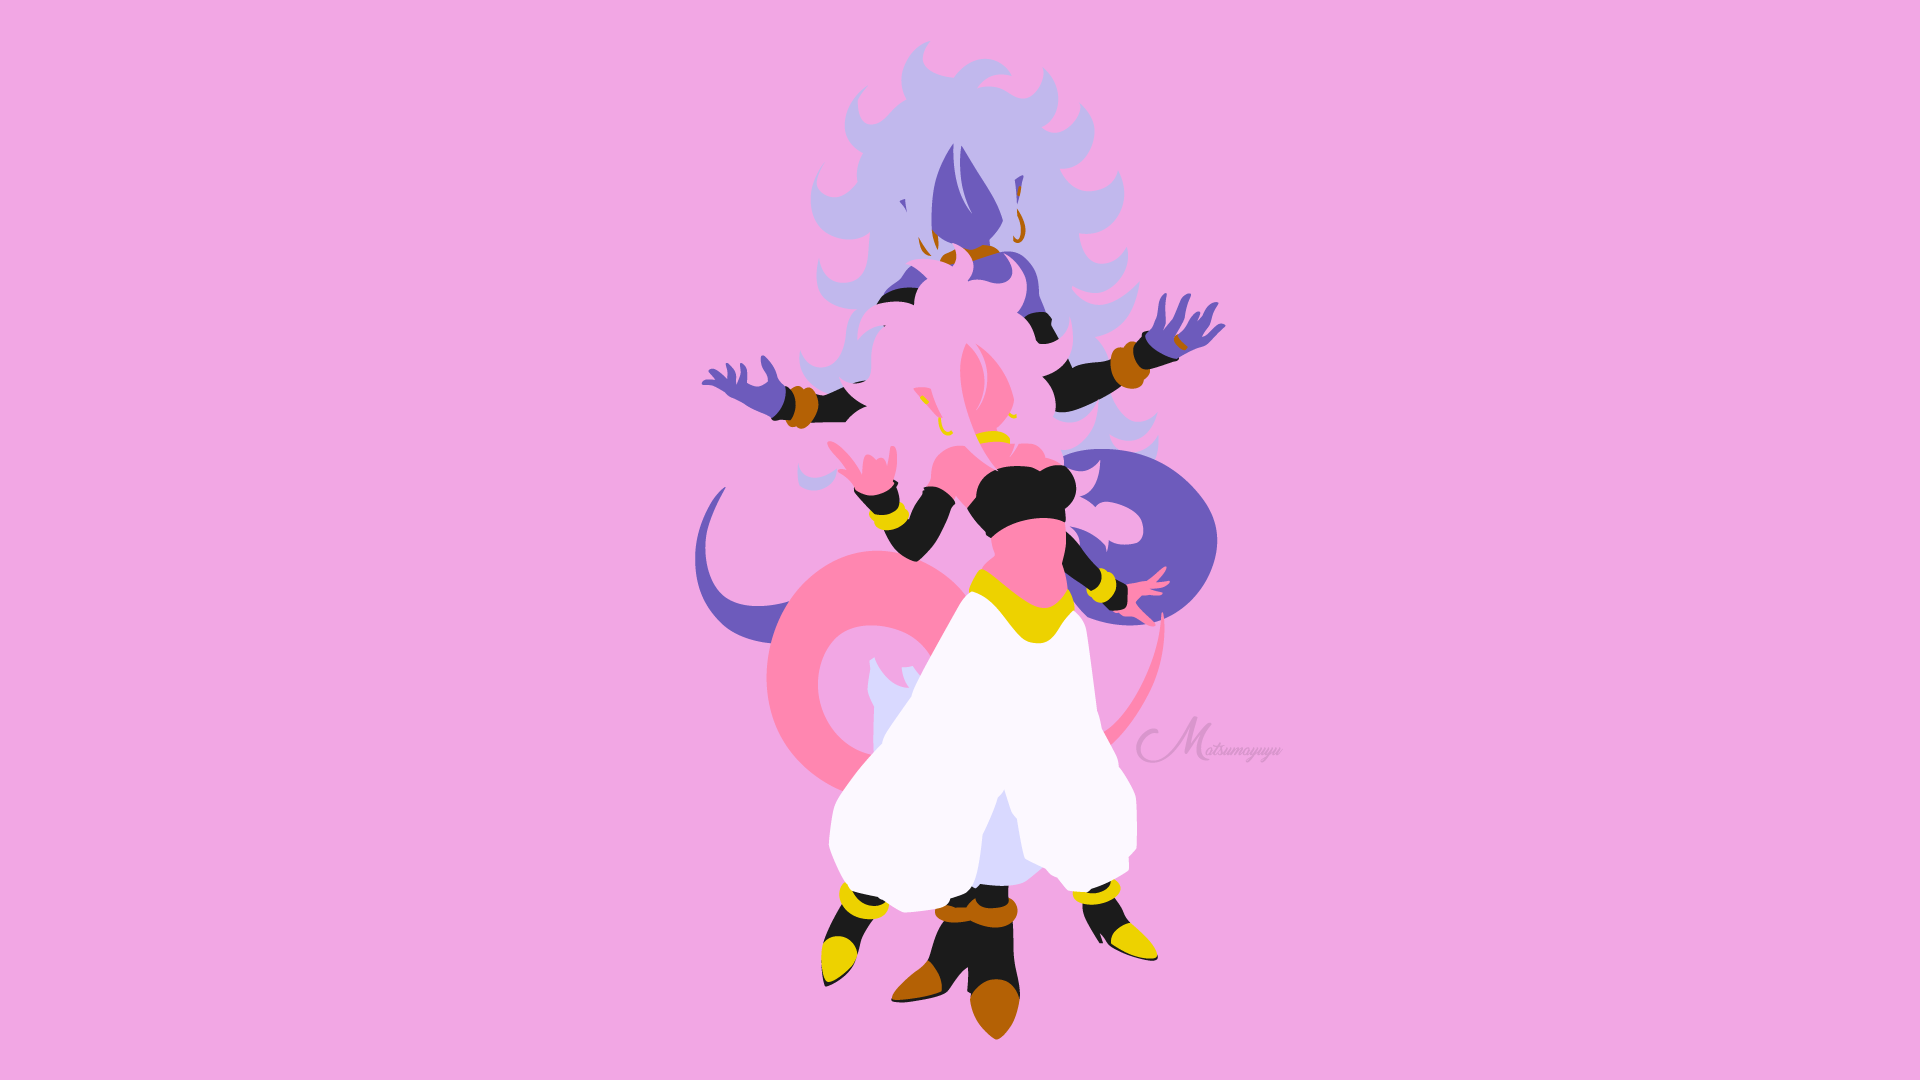 Android 21 Wallpapers - Top Free Android 21 Backgrounds ...